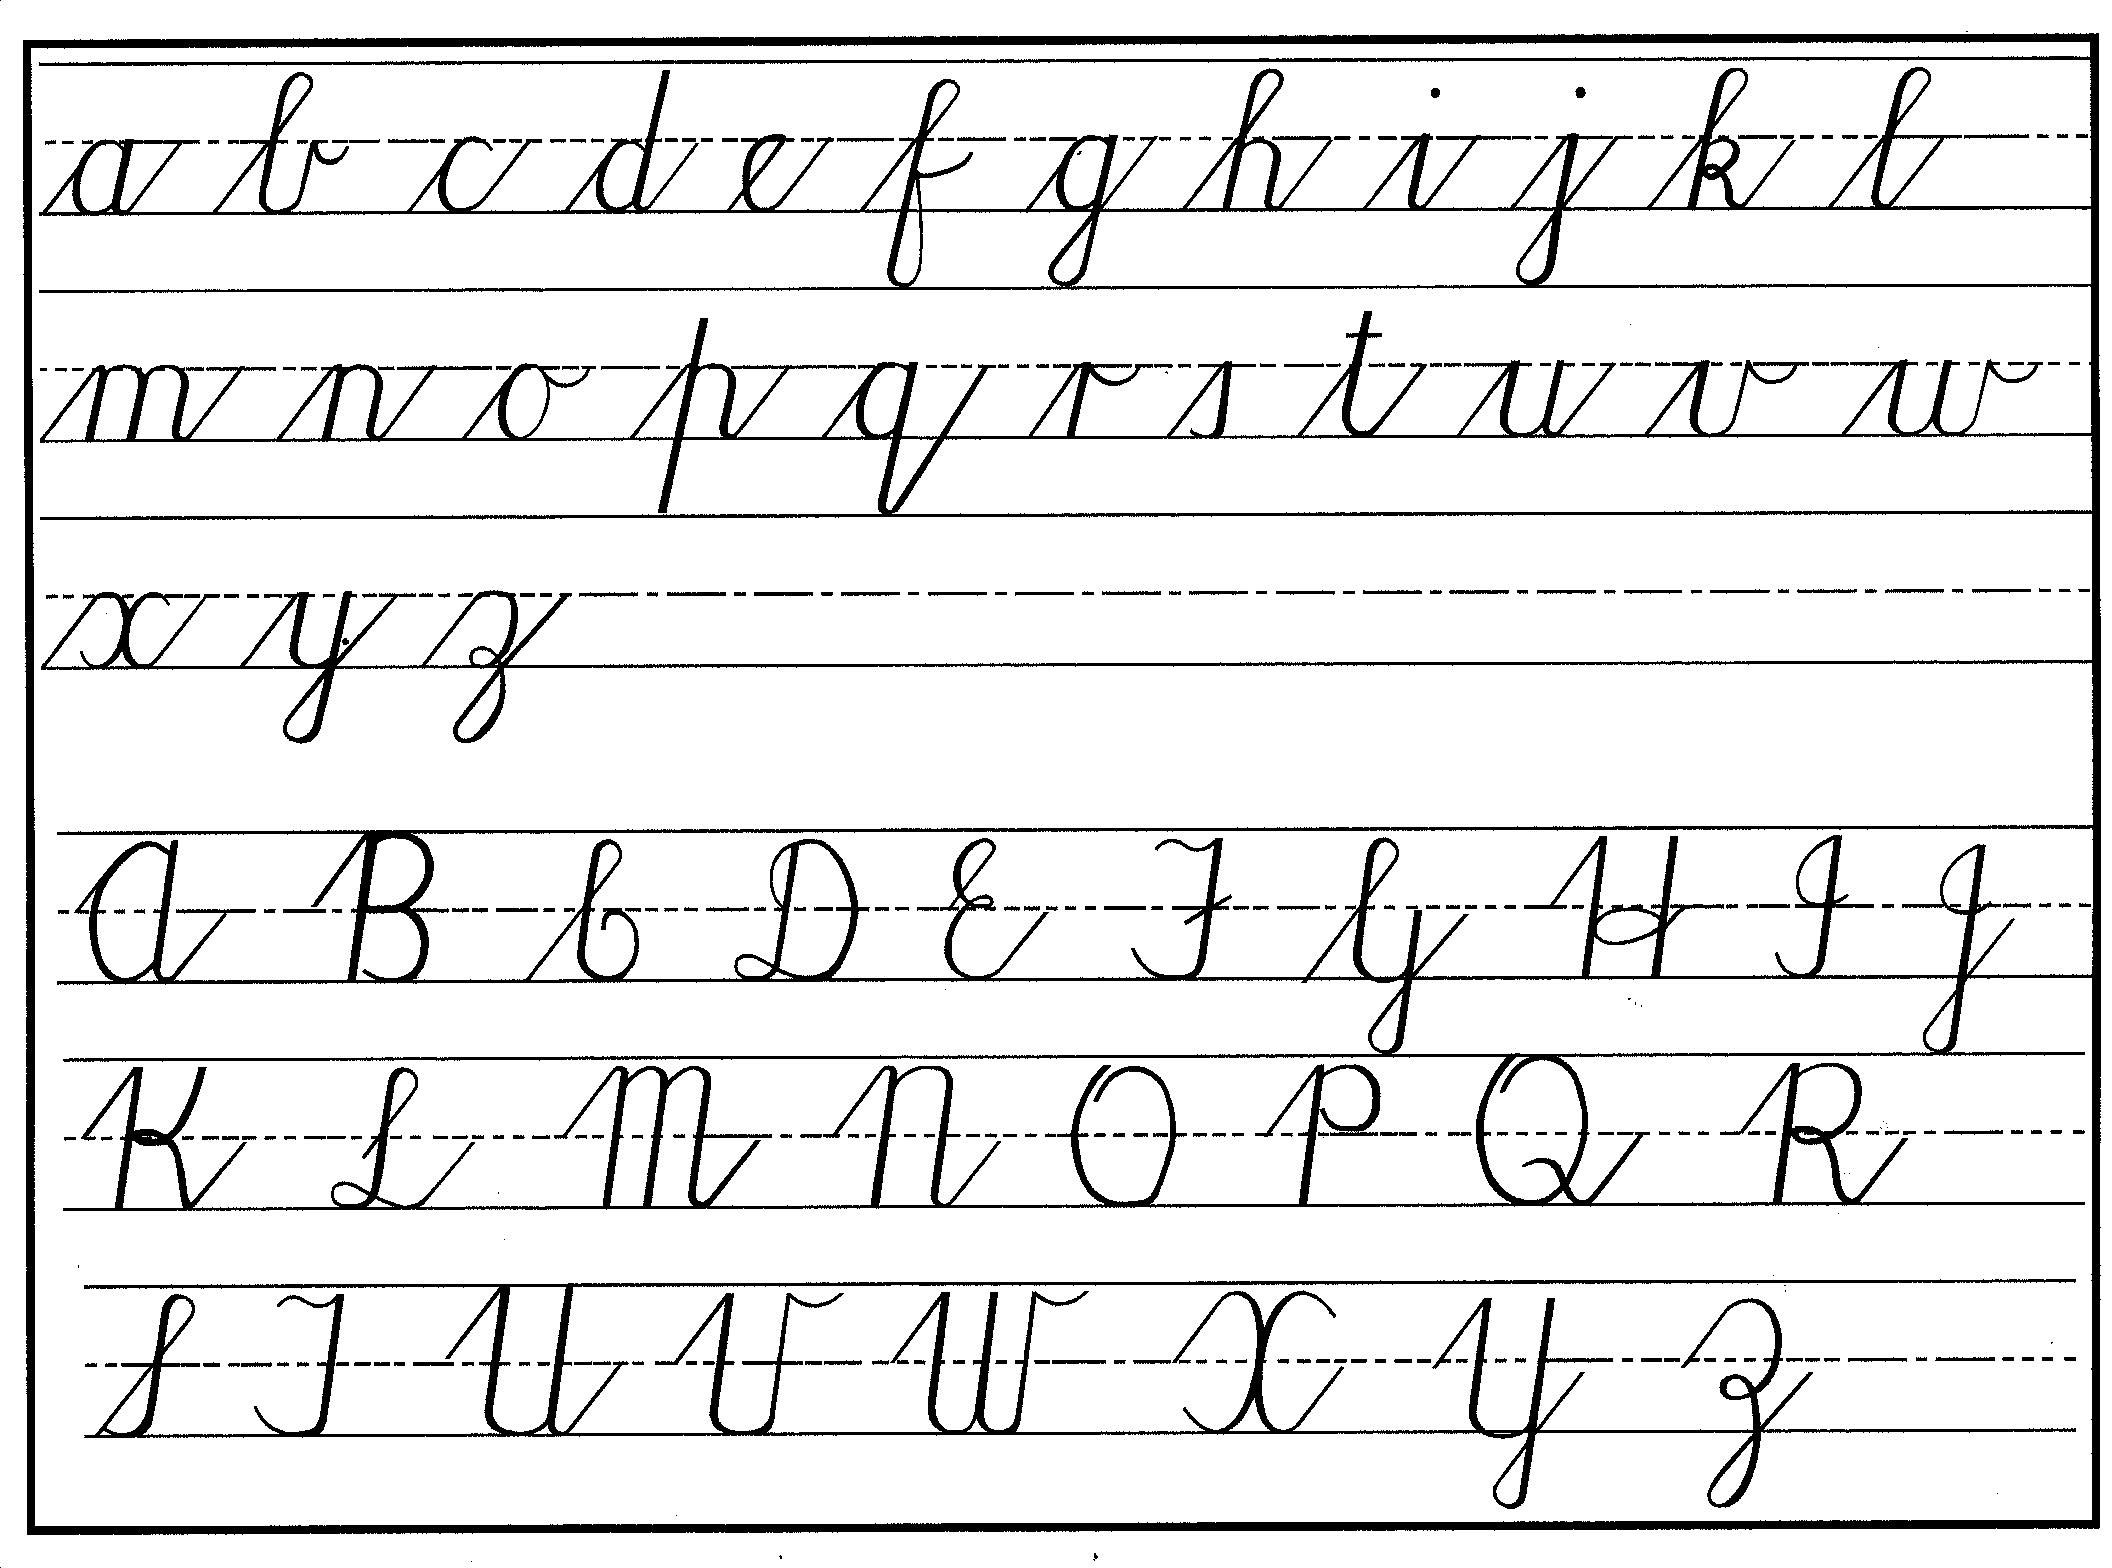 Worksheets Abc Cursive cursive handwriting step by for beginners charts apparently writing and reading of is foreign to the younger generation